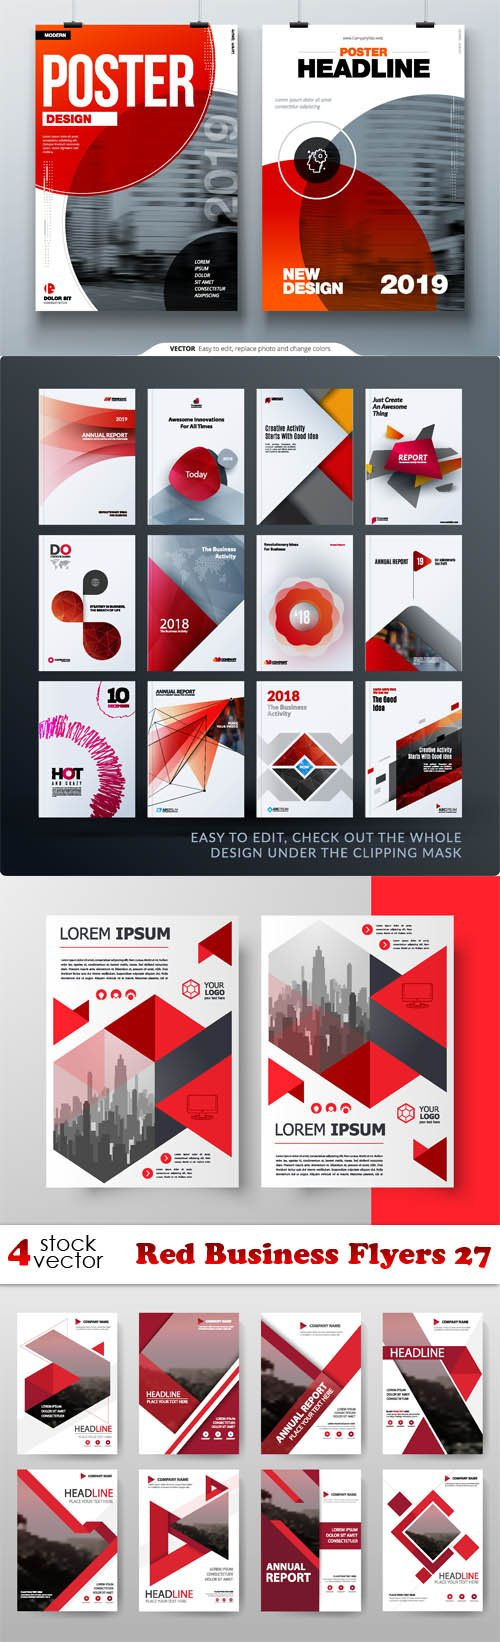 Vectors - Red Business Flyers 27